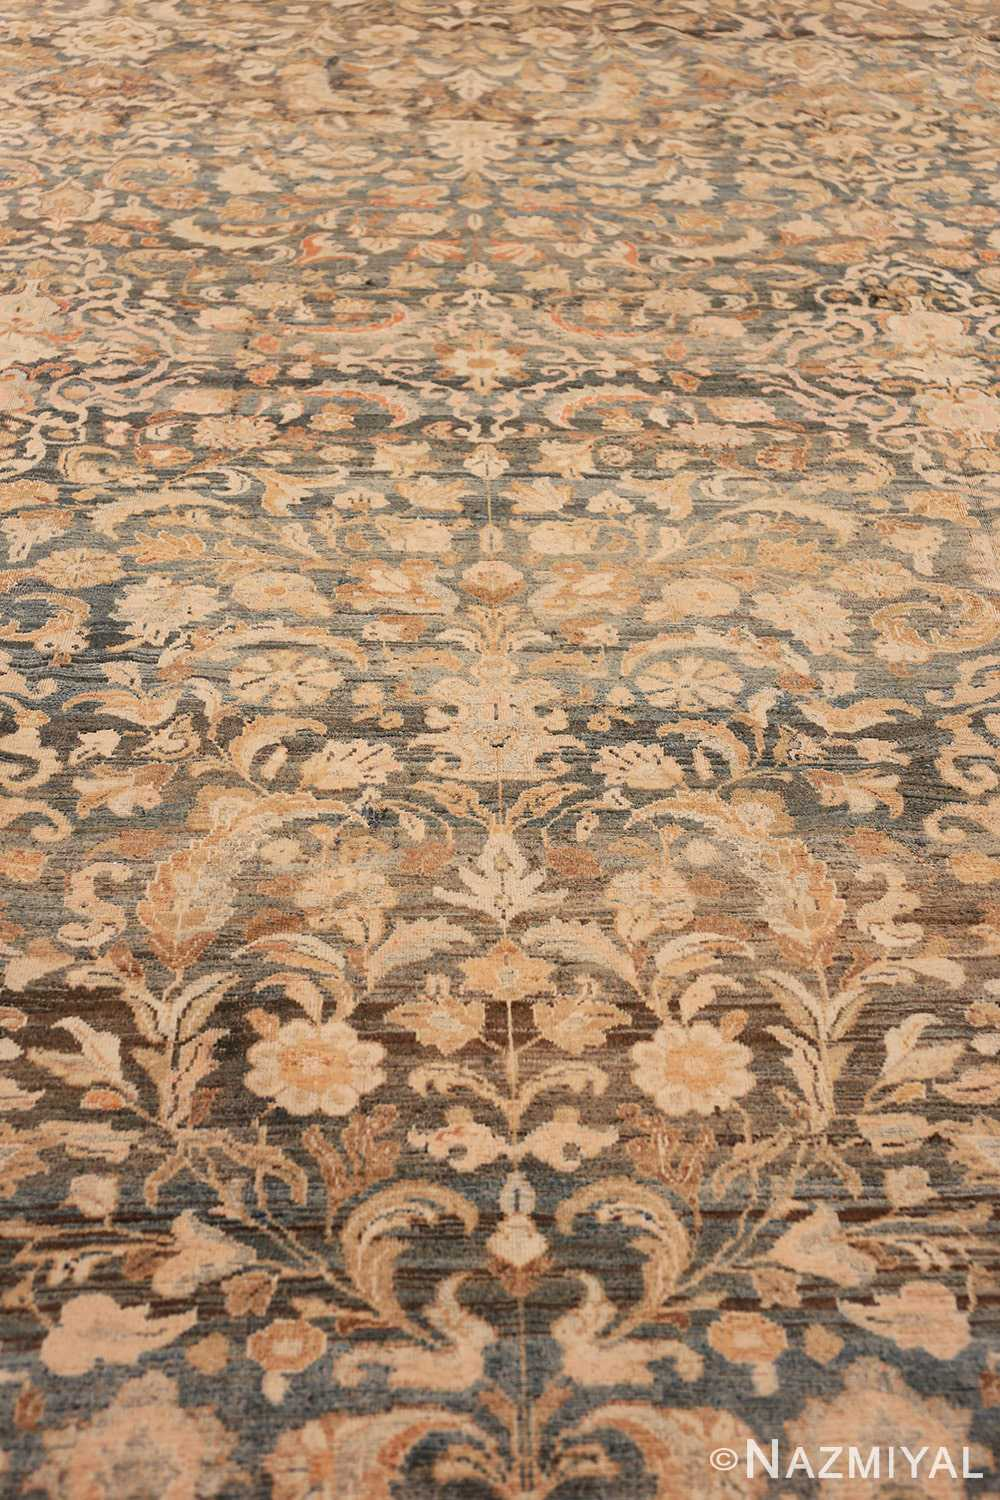 Field Large decorative Antique Persian Malayan rug 50339 by Nazmiyal